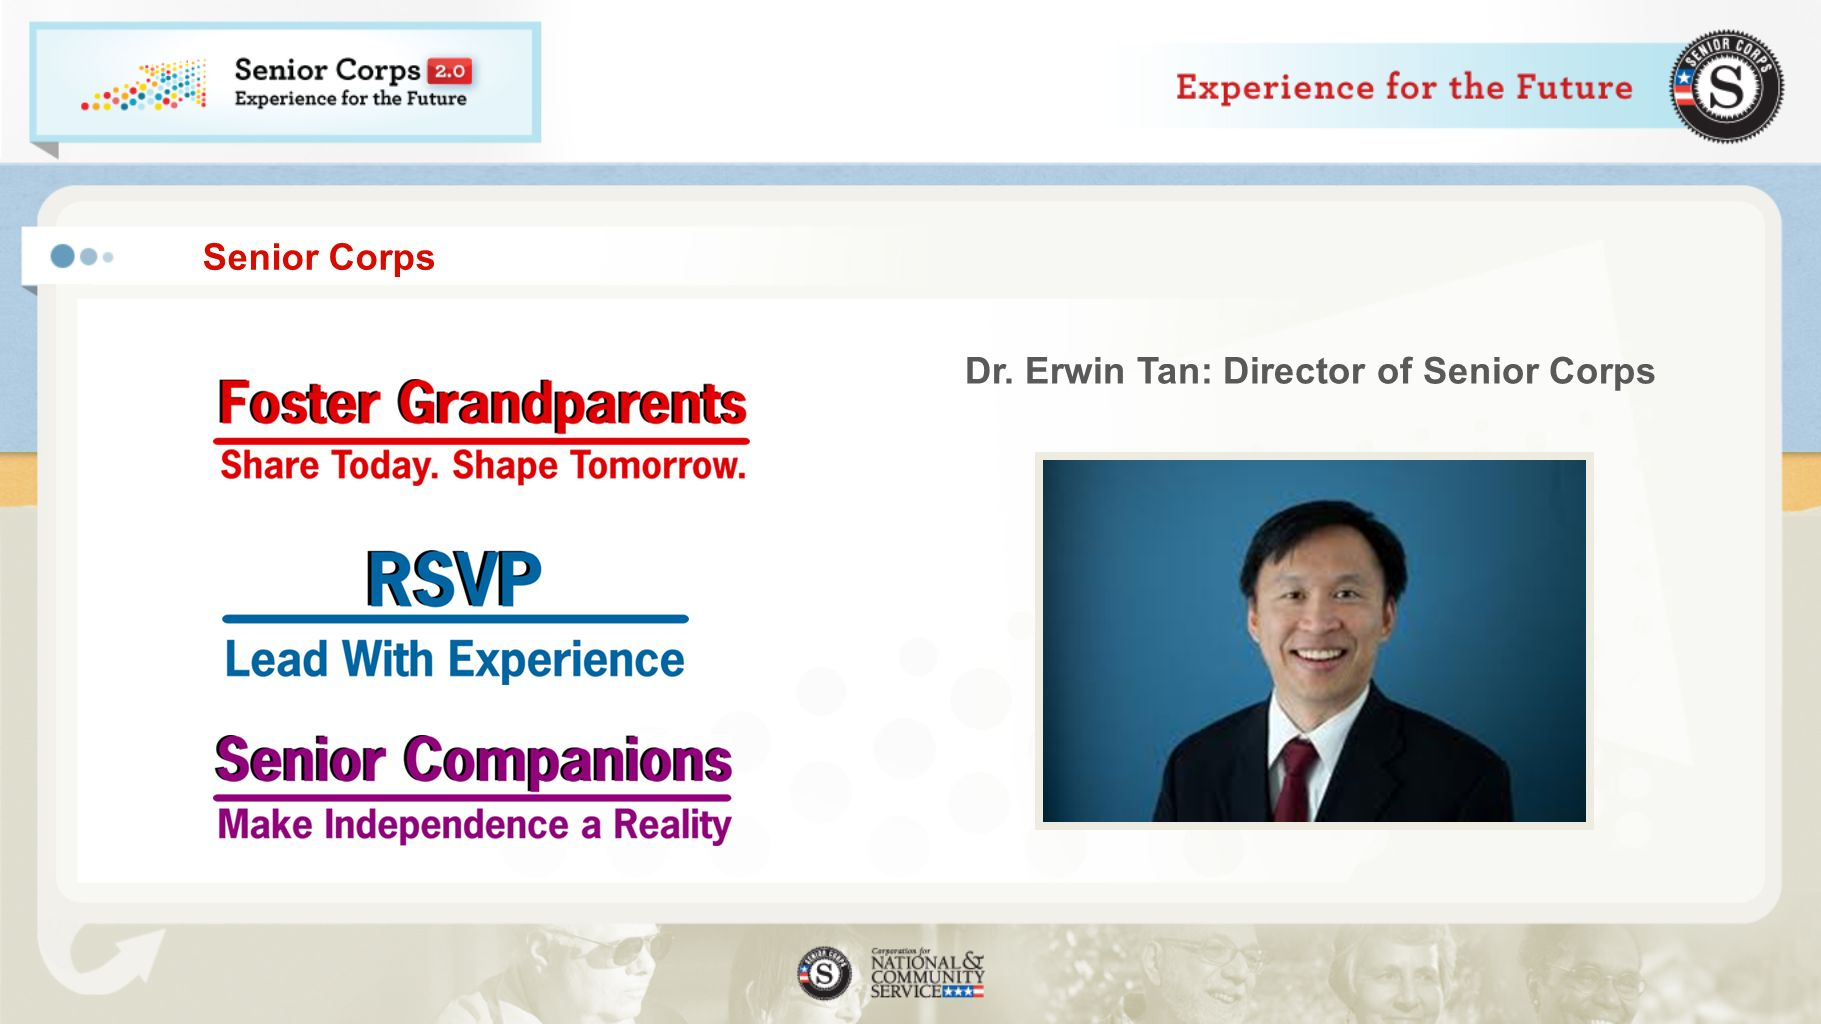 Senior Corps Dr. Erwin Tan: Director of Senior Corps